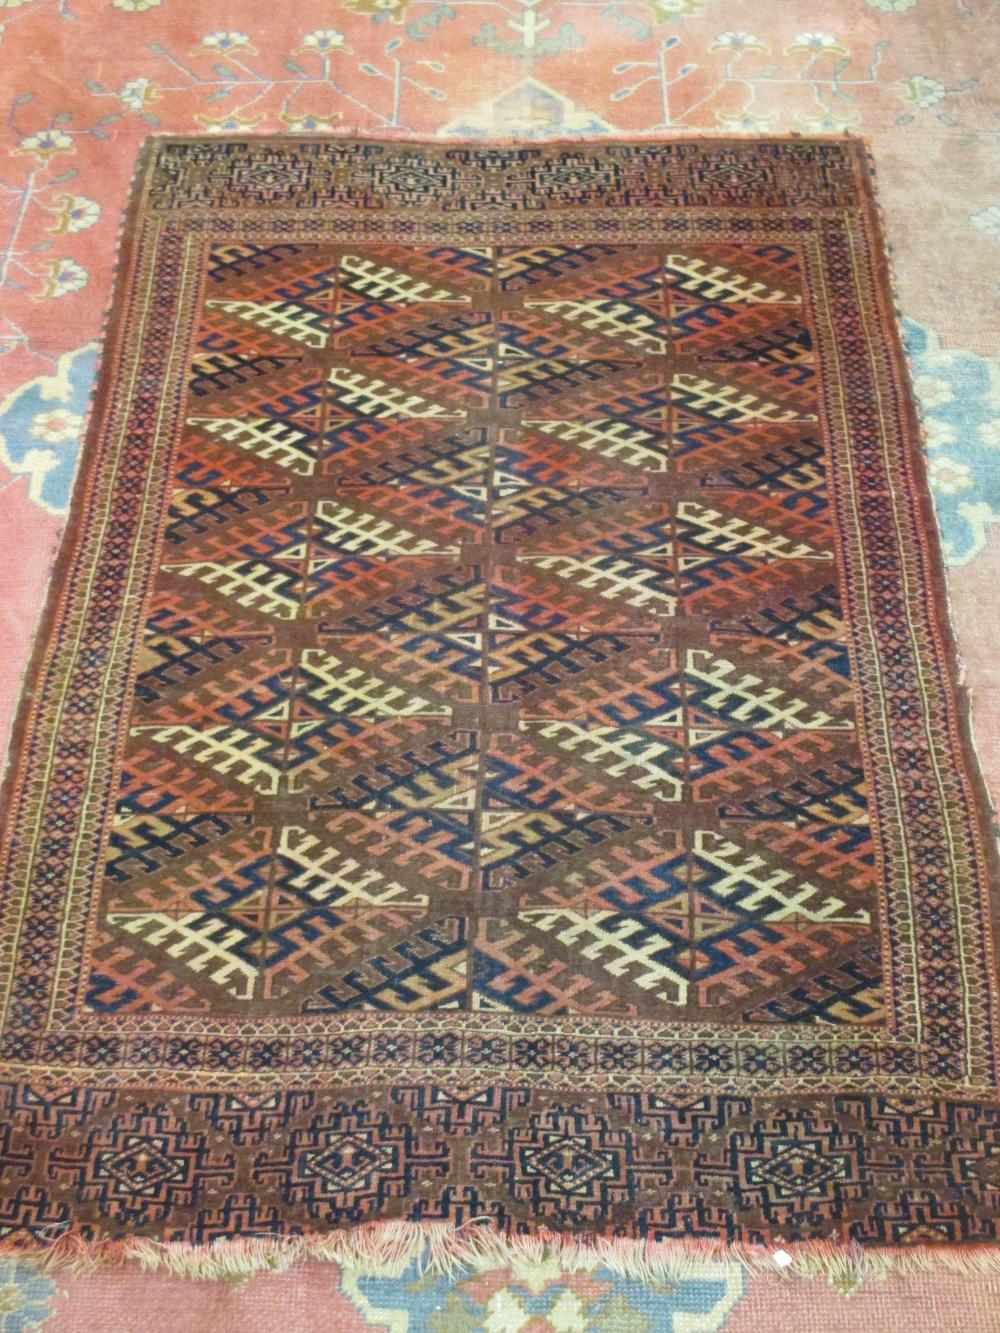 Lot 756 - Two Persian rugs, 287 x 200cm and 187 x 124cm (2)